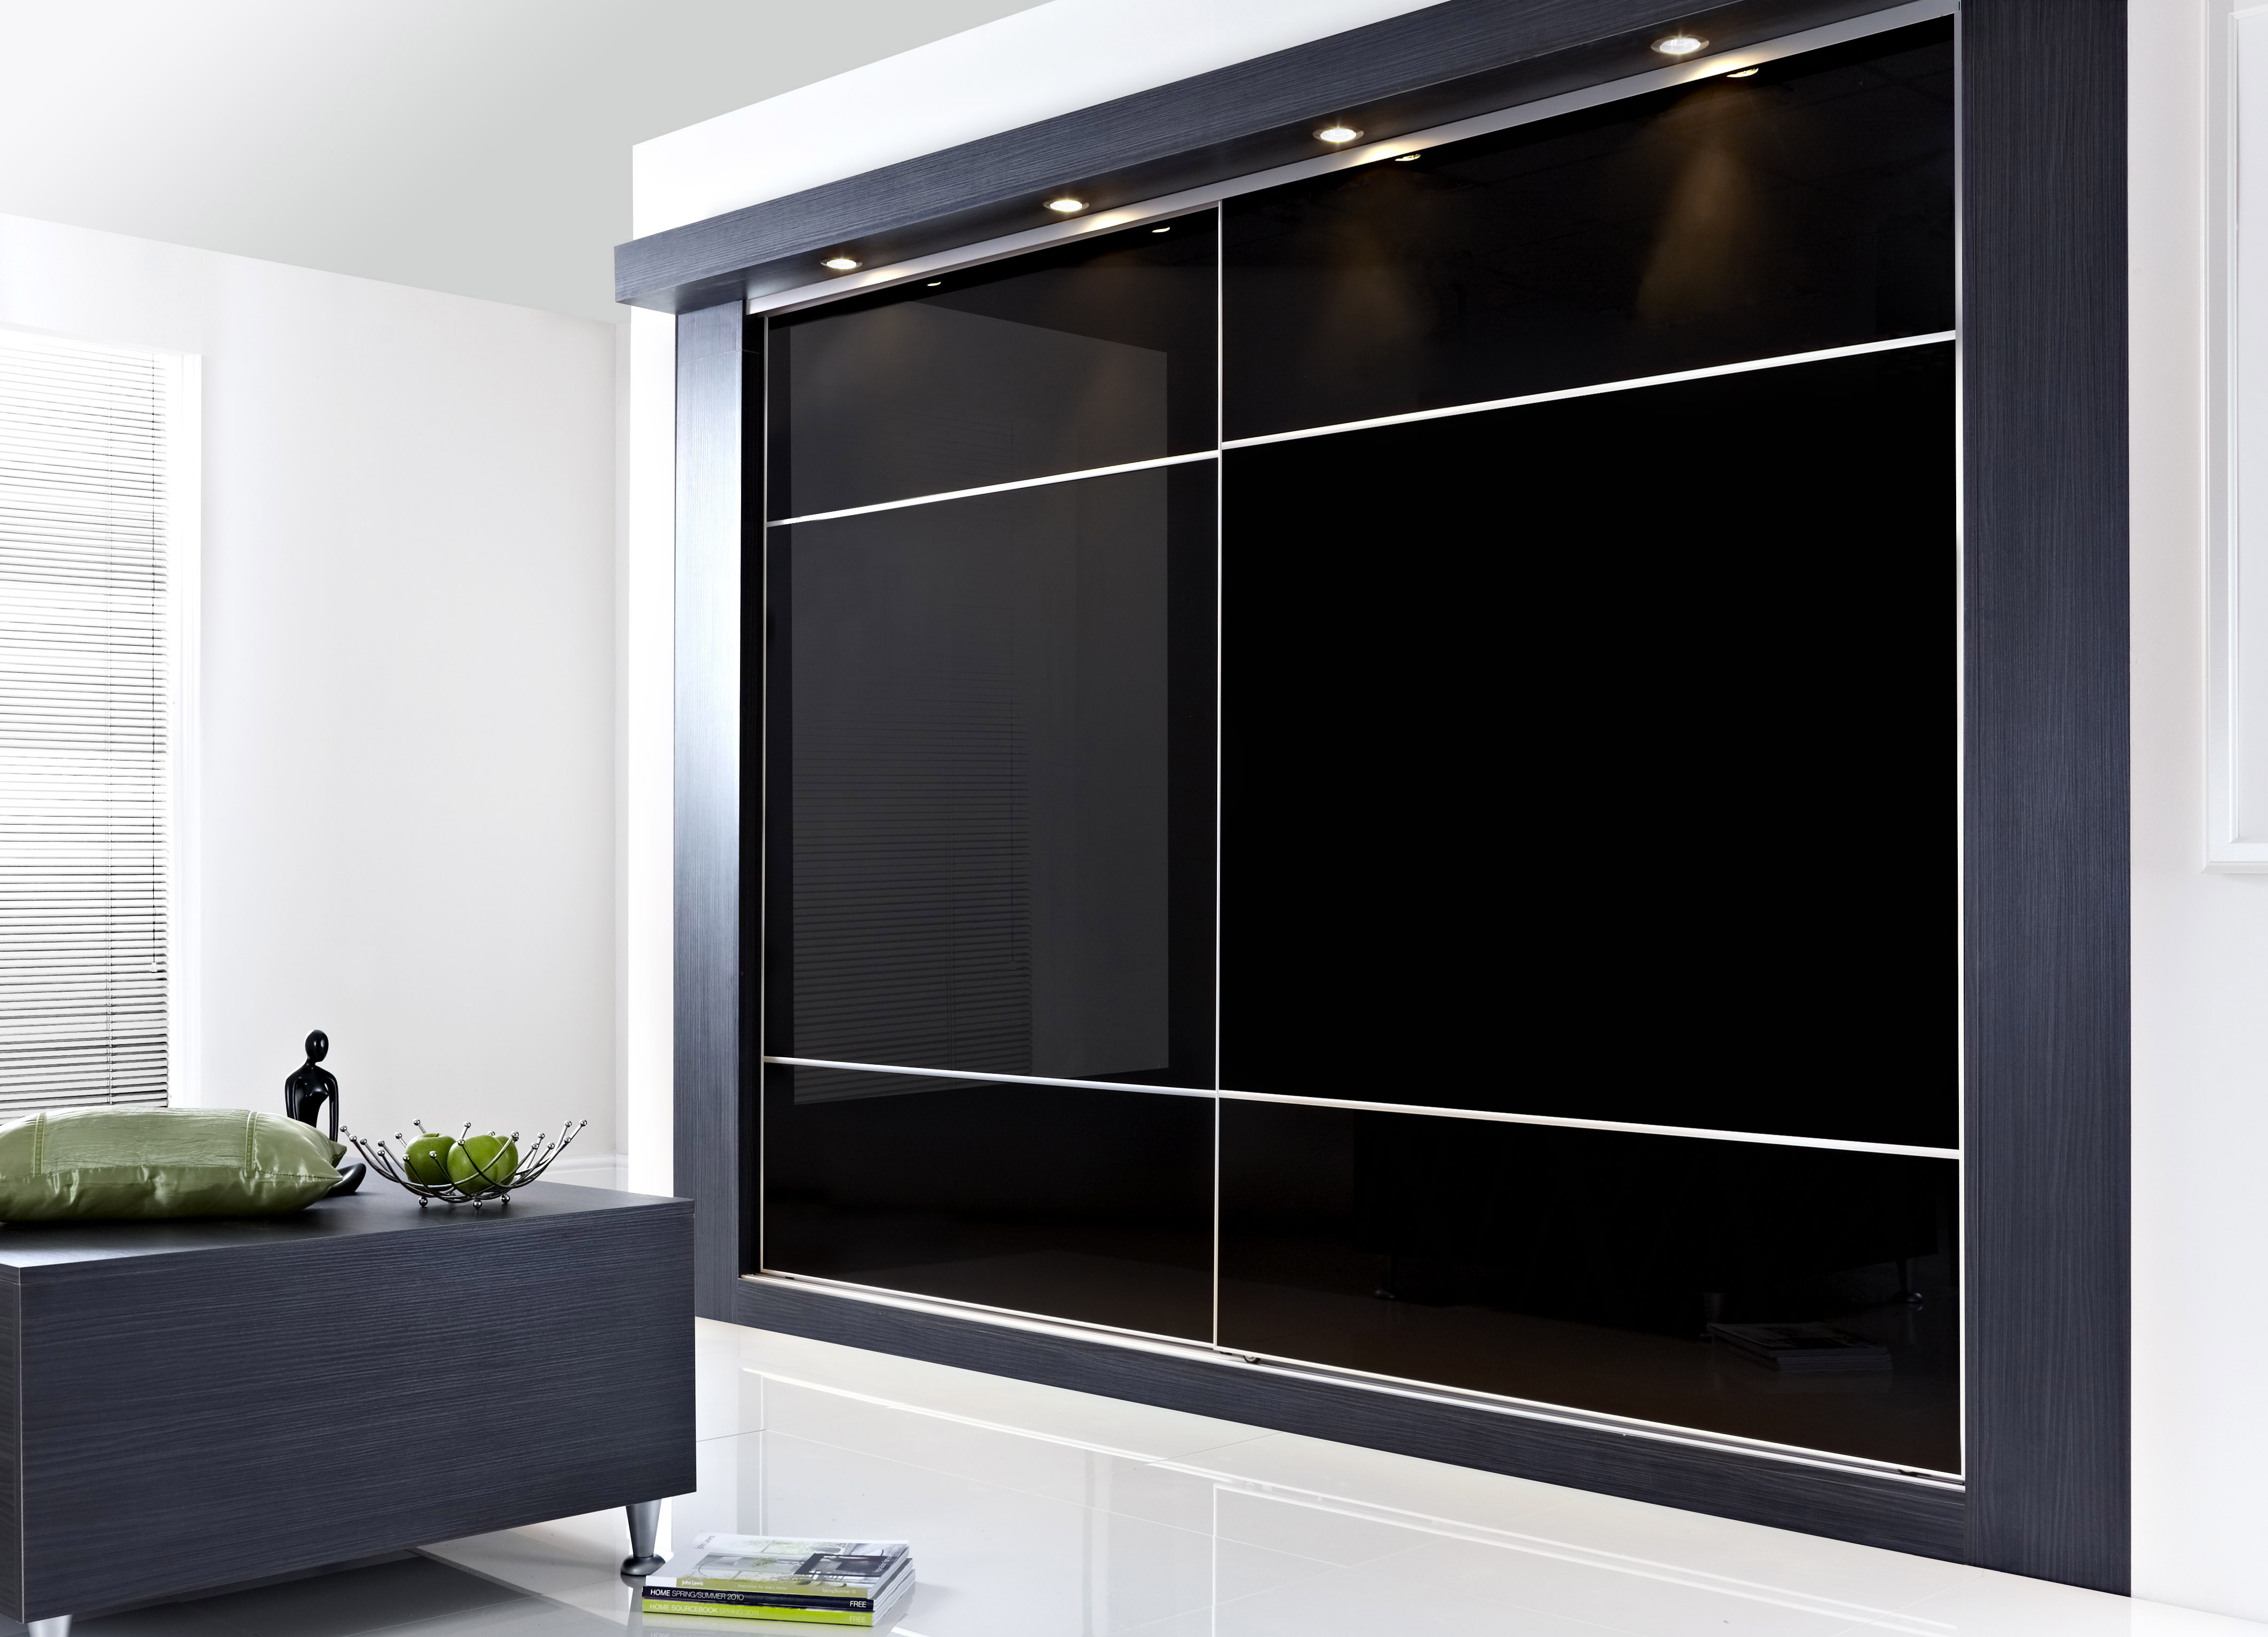 Luxury Furniture. large black glass bedroom cabinet with sliding door connected by glass wardrobe designs for bedroom